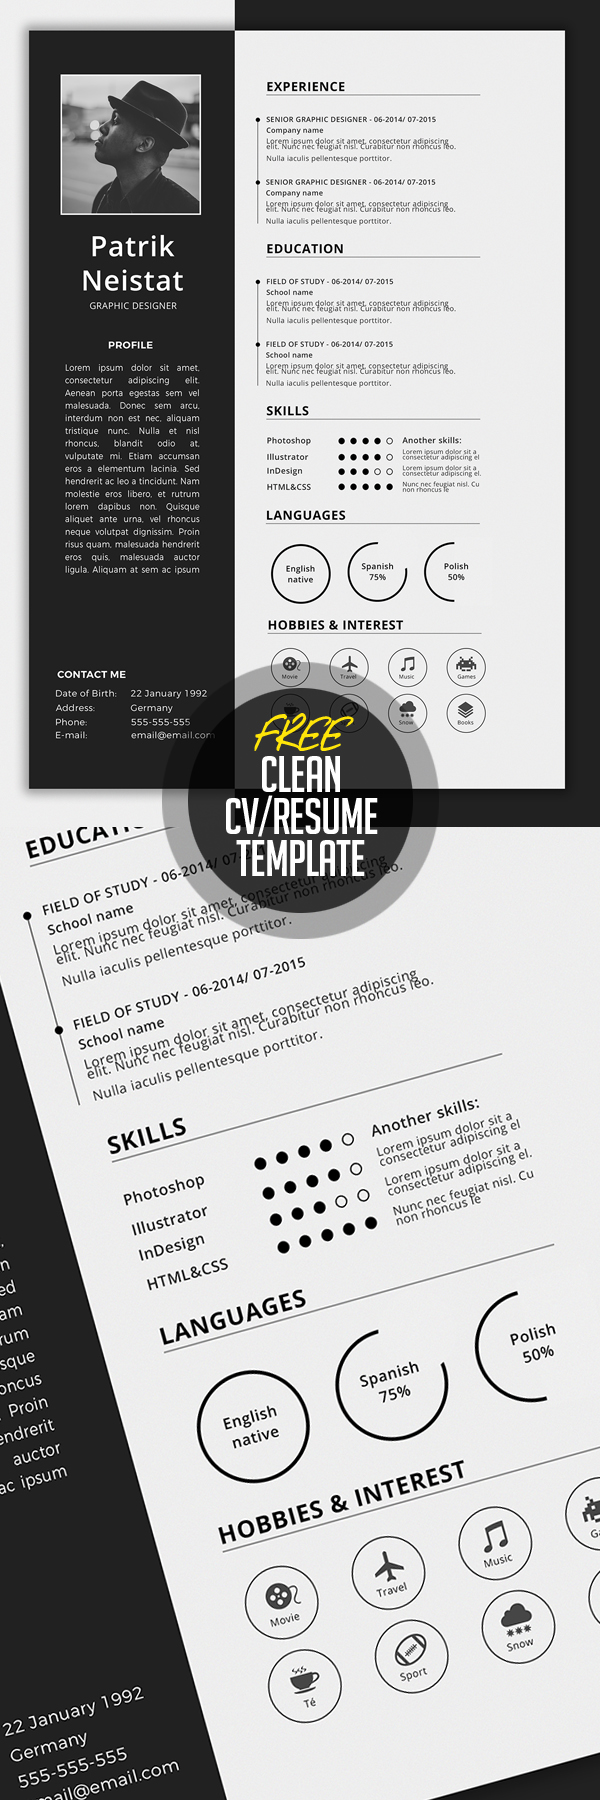 resume templates for bies graphic design junction simple cv resume template